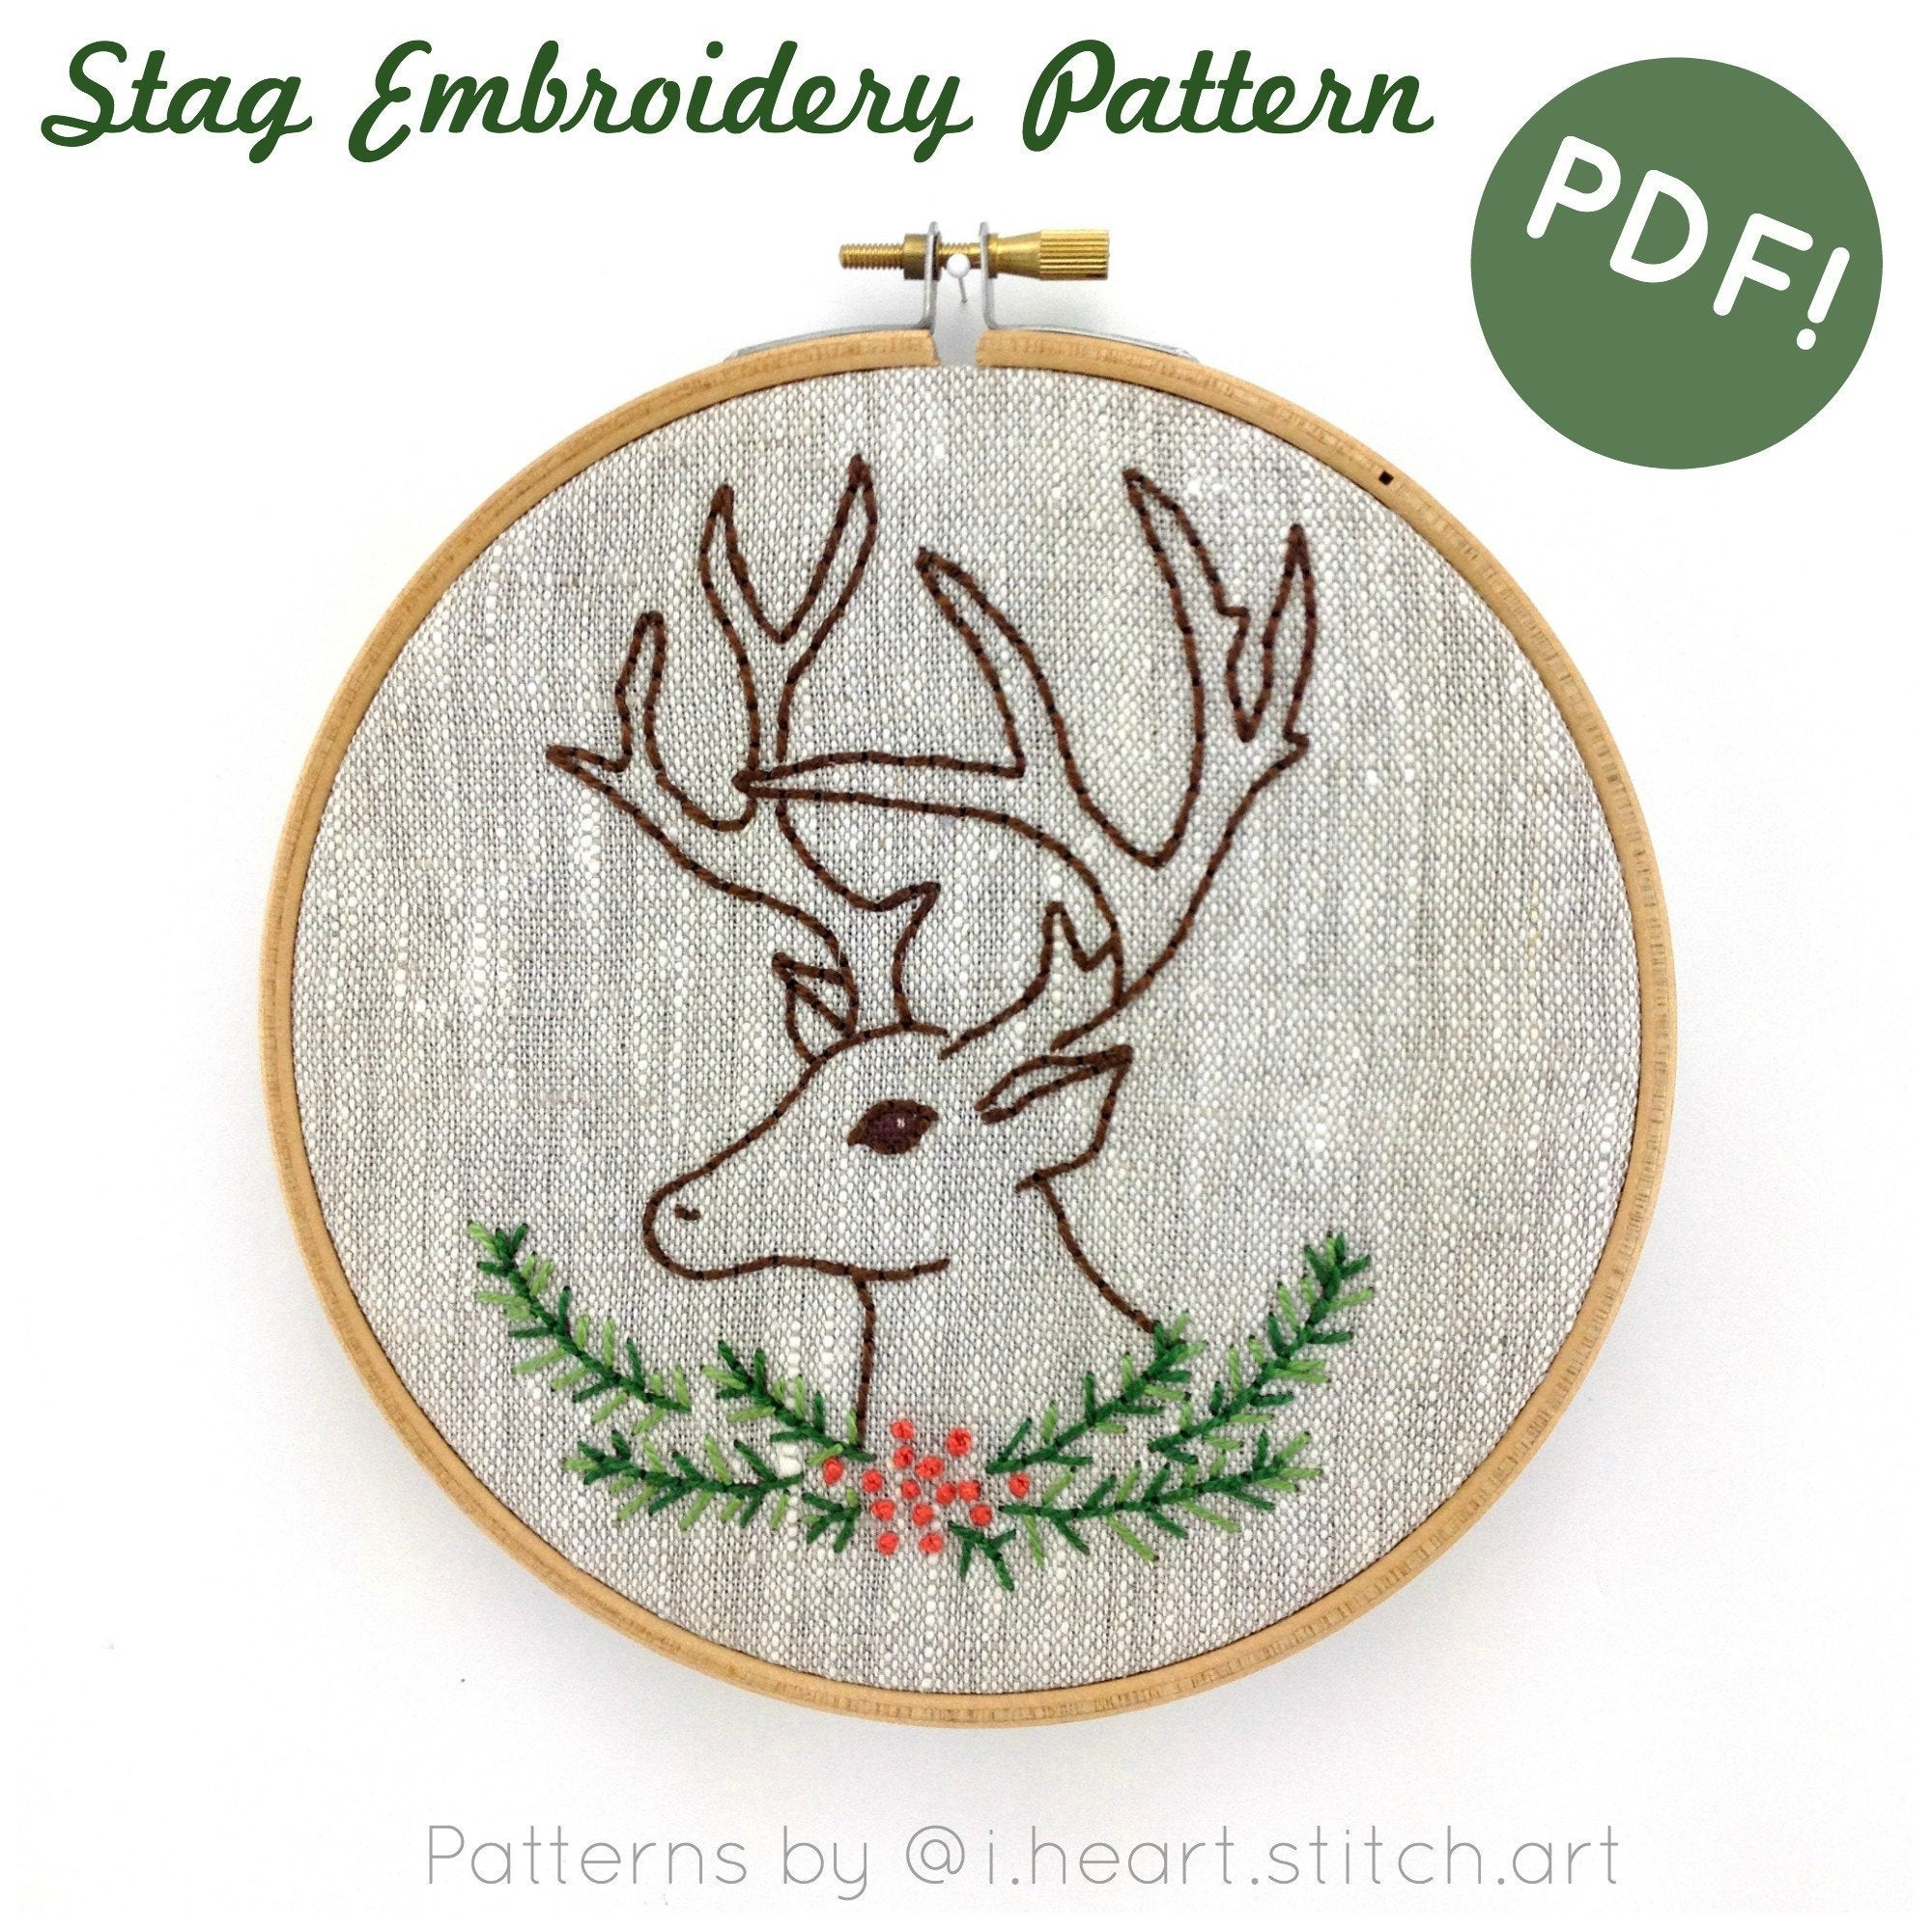 Make Embroidery Pattern Stag Embroidery Pattern Digital Download